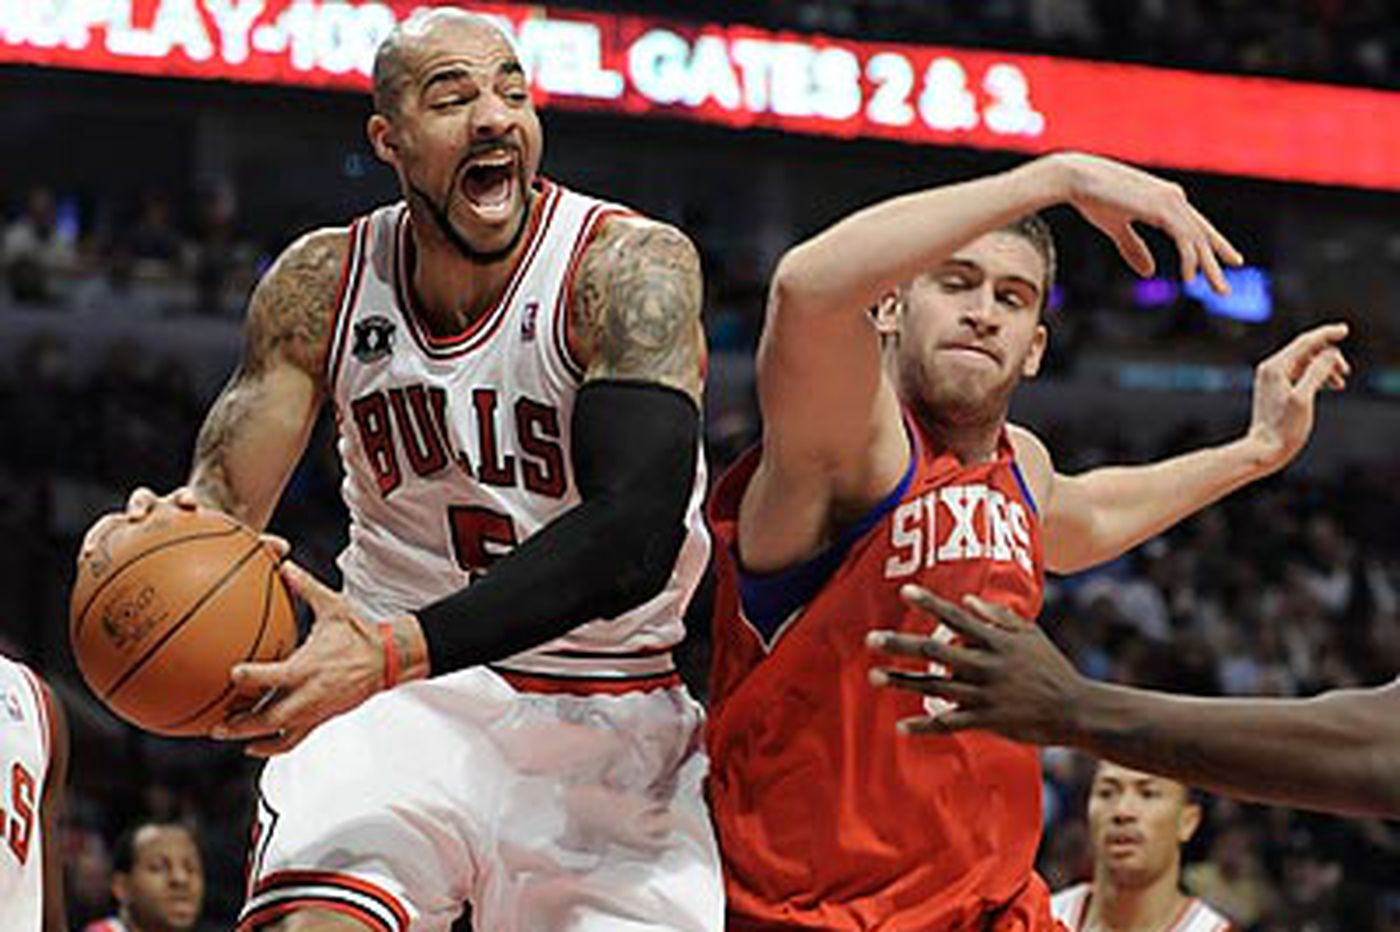 No holiday cheer for Sixers in bruising loss to Bulls